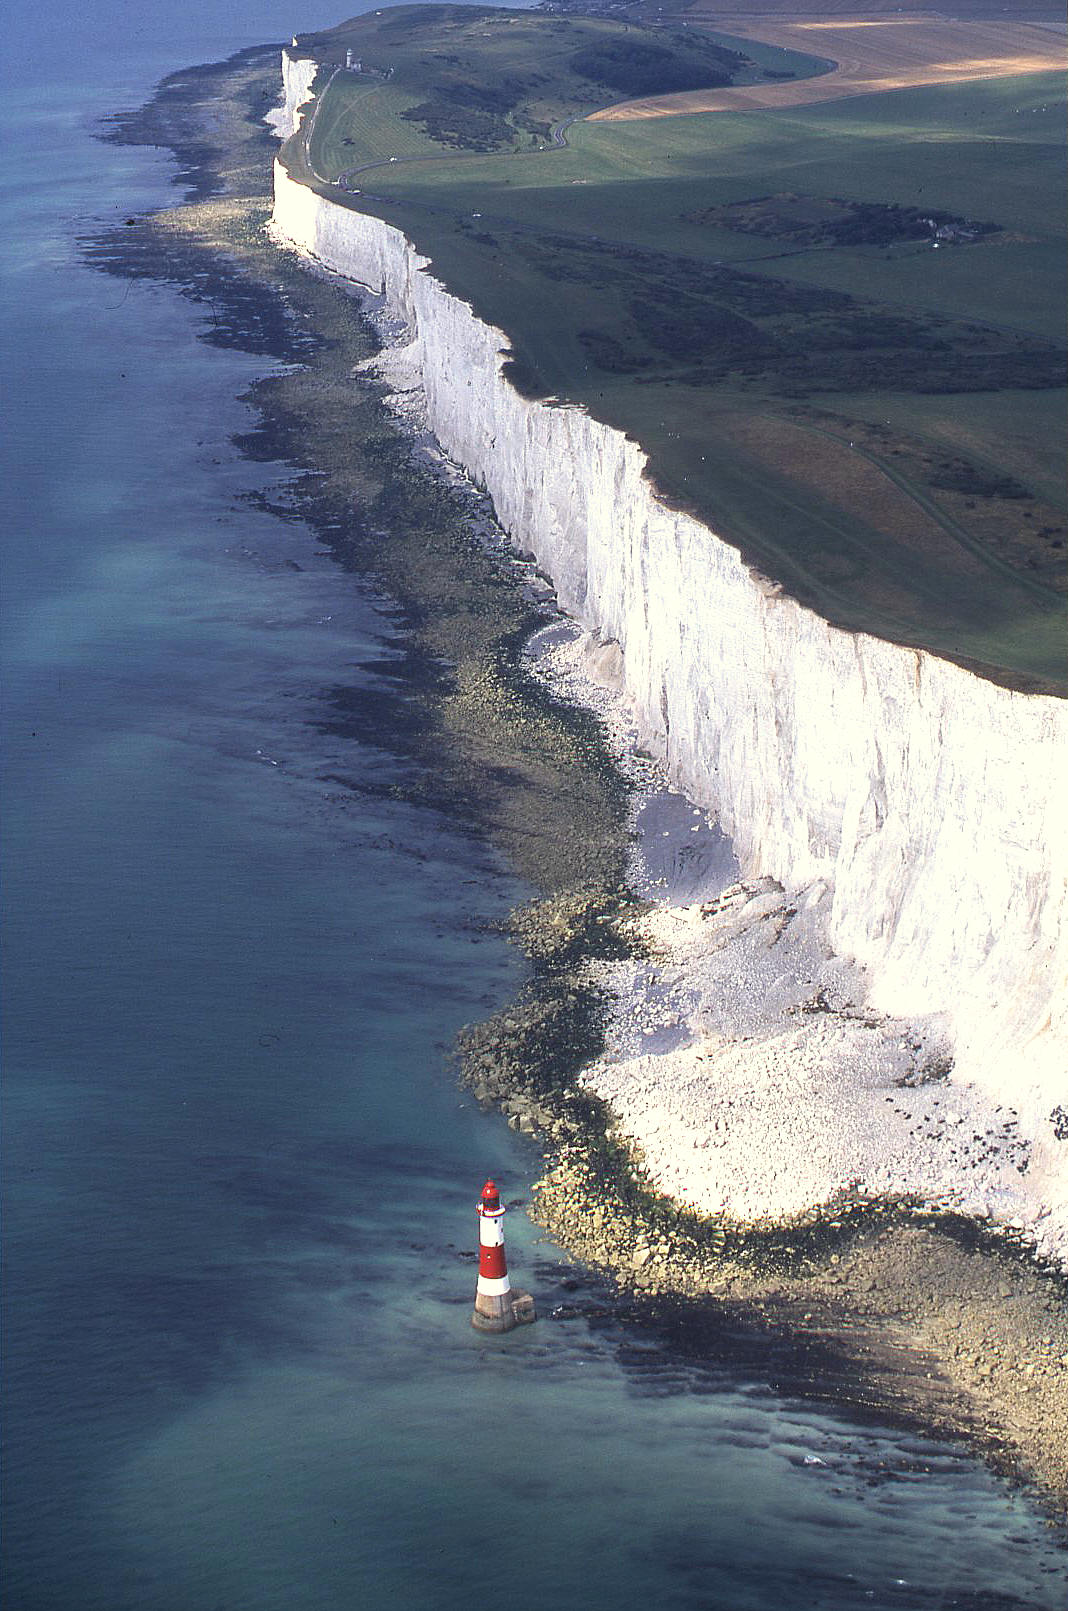 Beachy Head in 2001